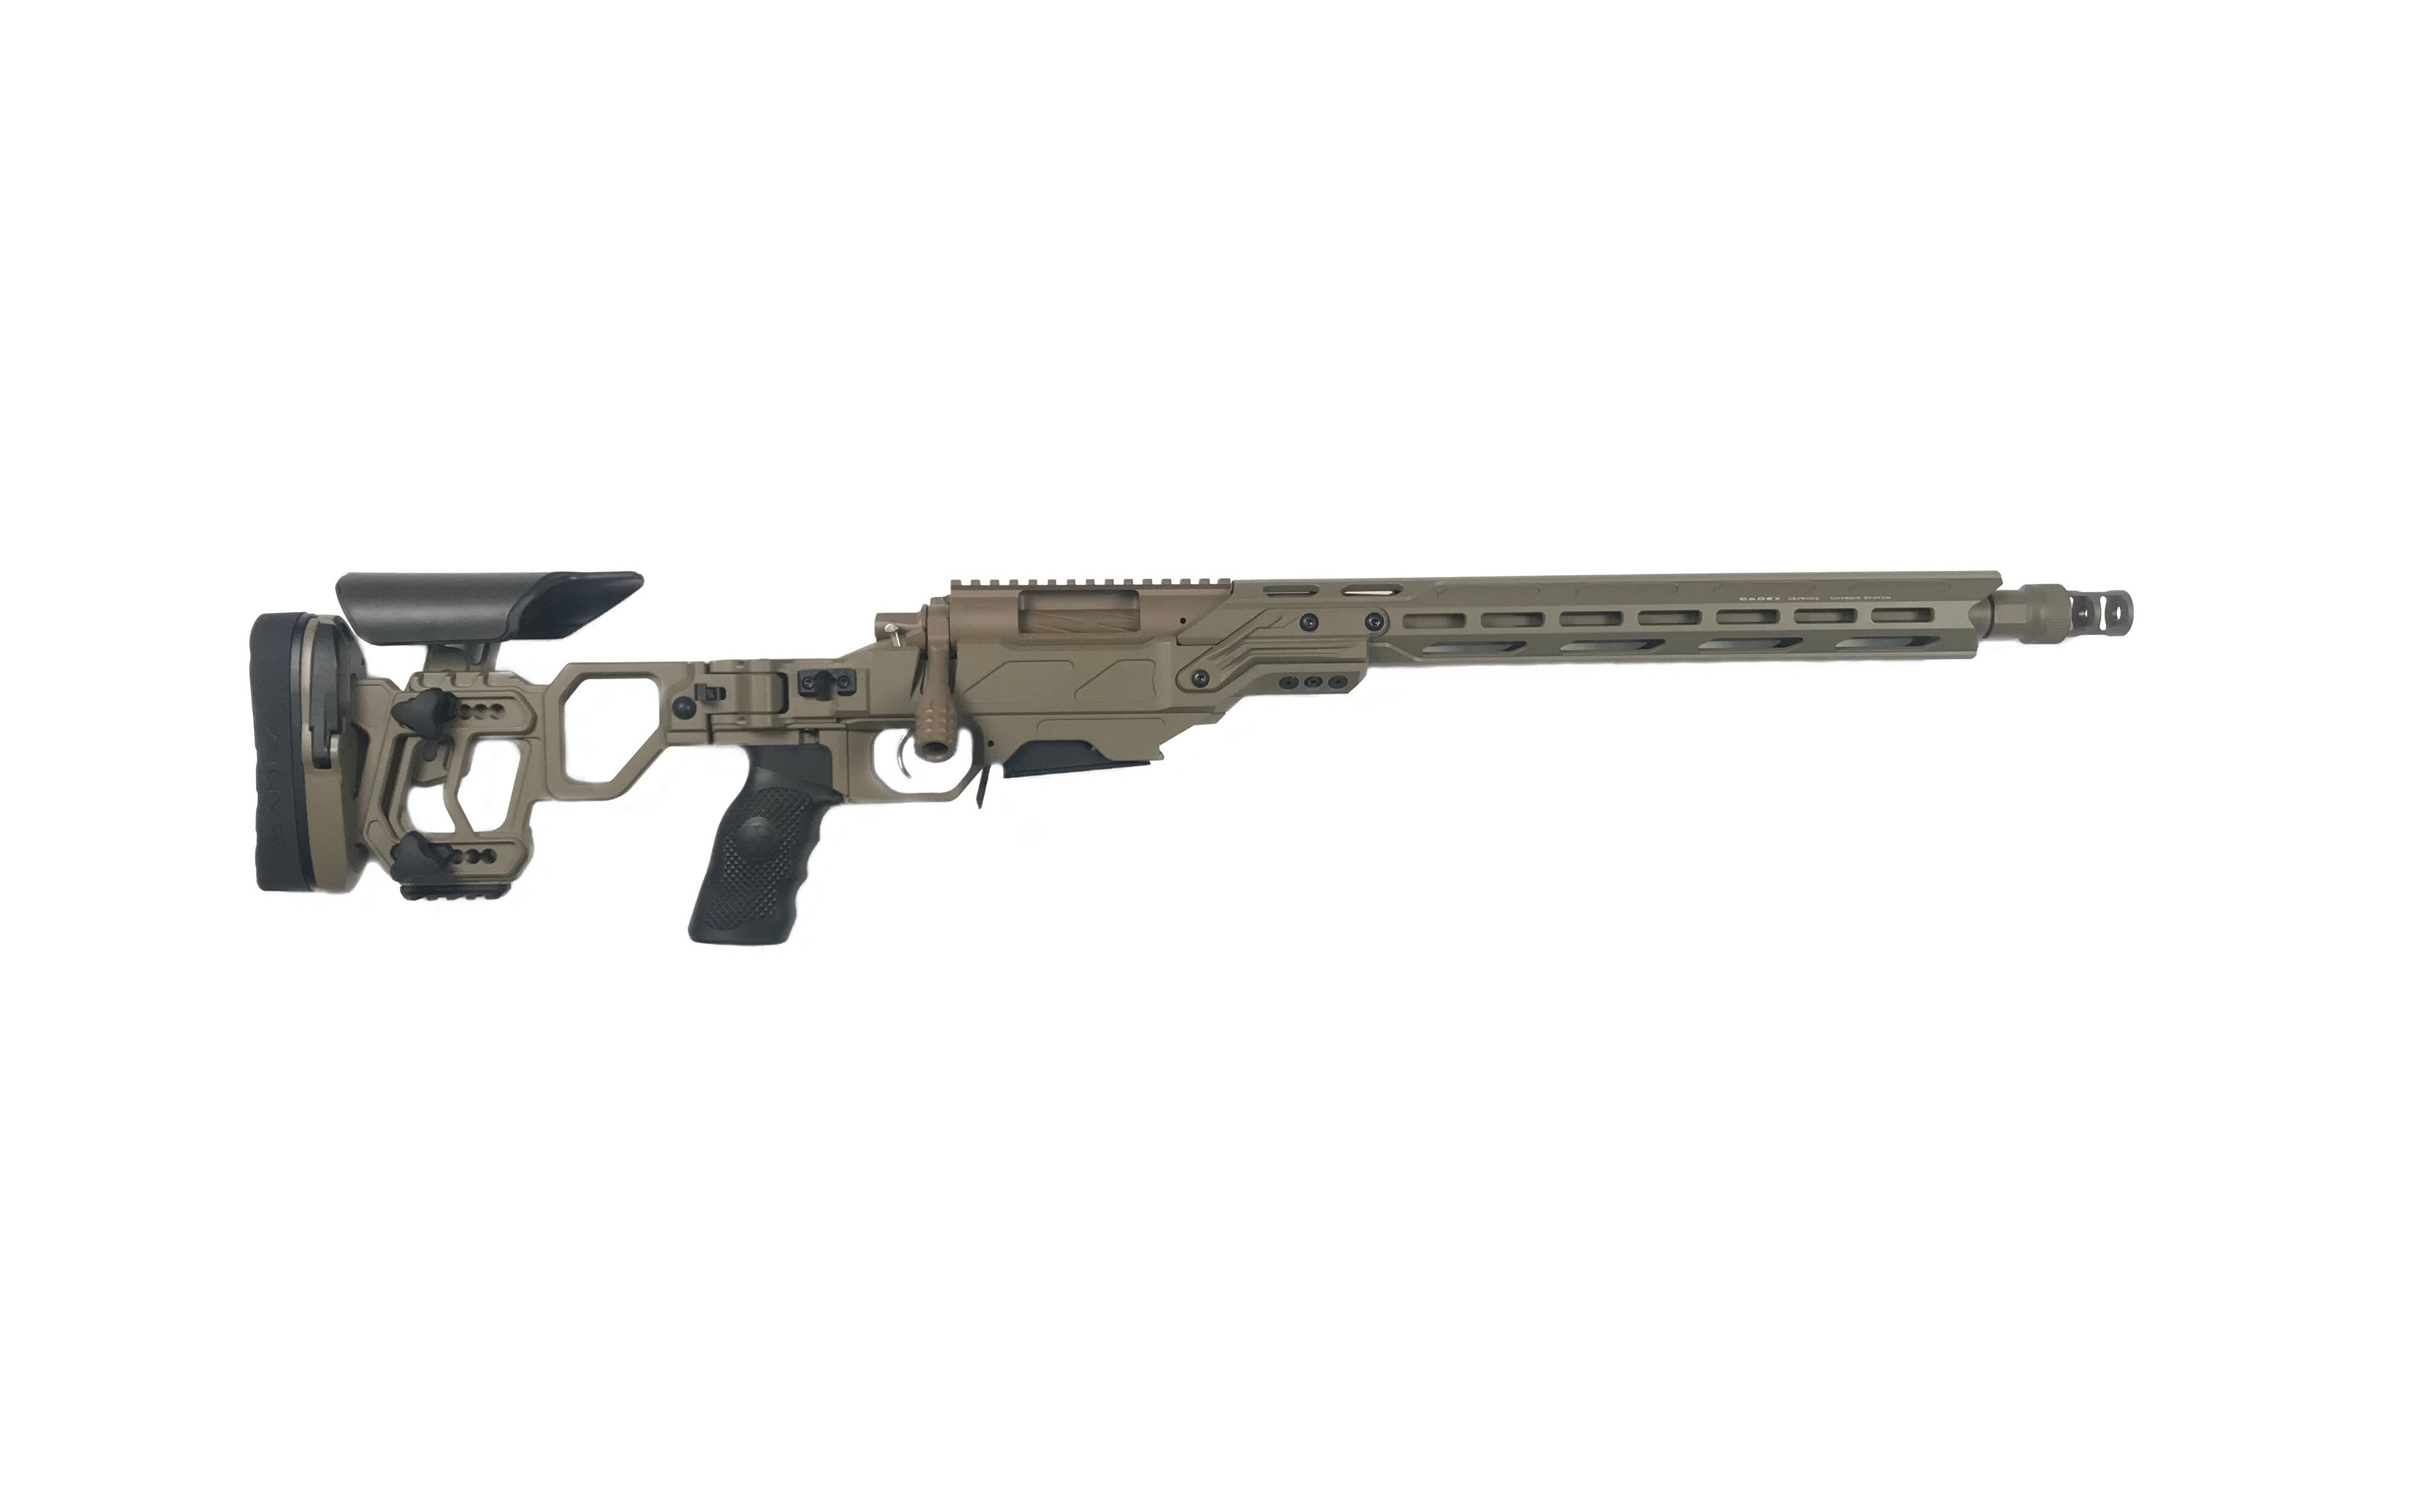 CONCEALABLE SNIPER RIFLE (CSR)